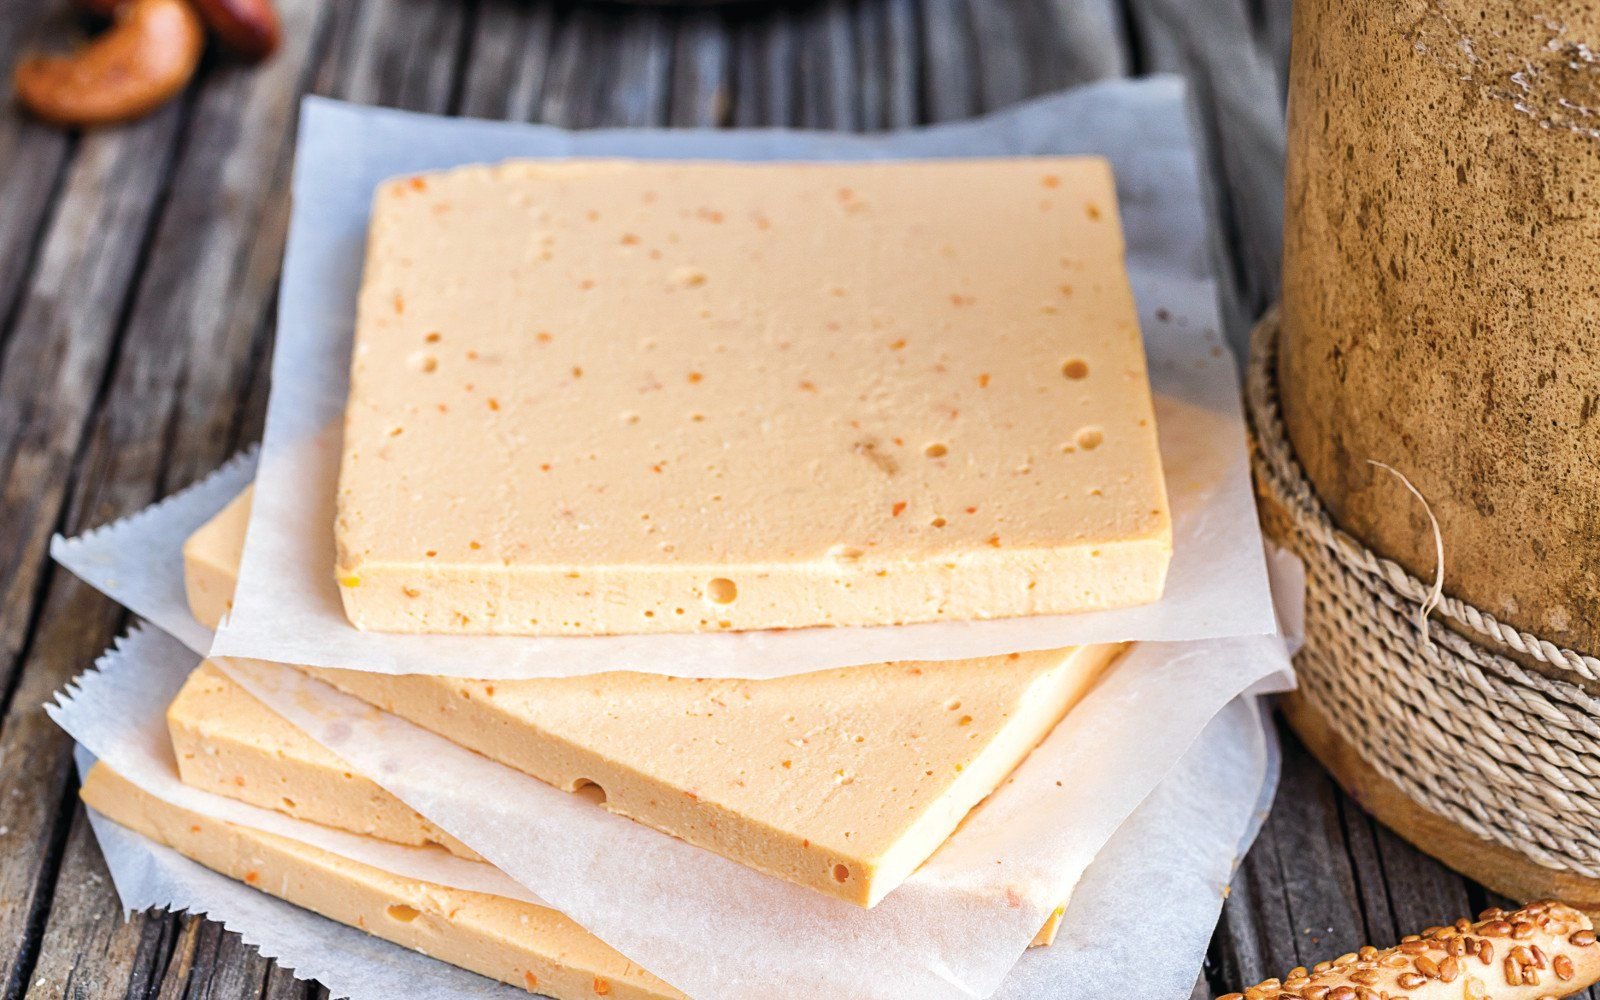 Lt P Gt The Same Classic American Cheese Taste You Grew Up With Mild Firm And Satisfying This Cre Vegan Cheese Recipes American Cheese Slices Vegan Dishes